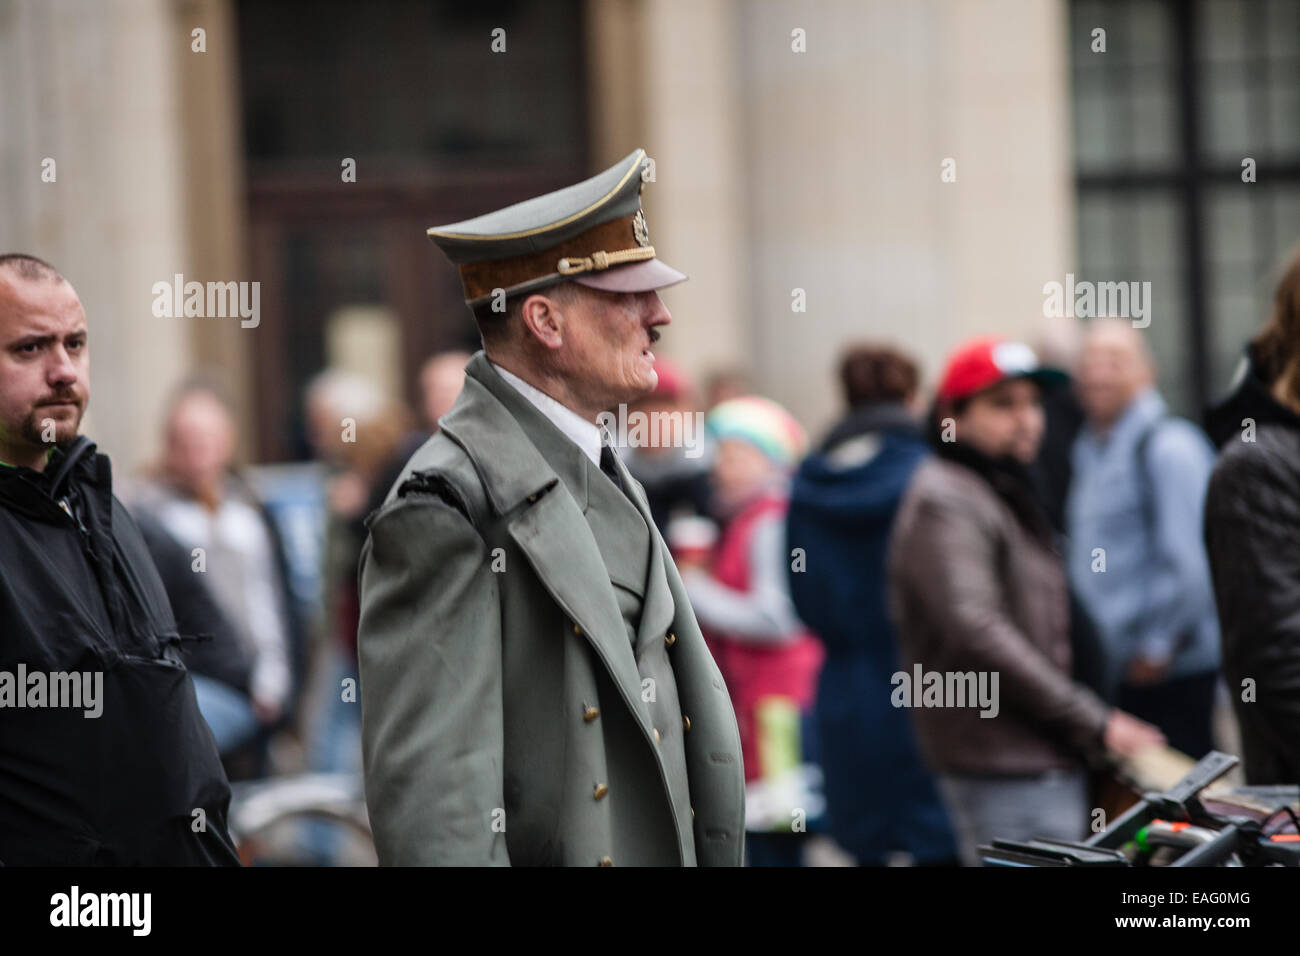 actor playing hitler stock photos actor playing hitler stock images alamy. Black Bedroom Furniture Sets. Home Design Ideas